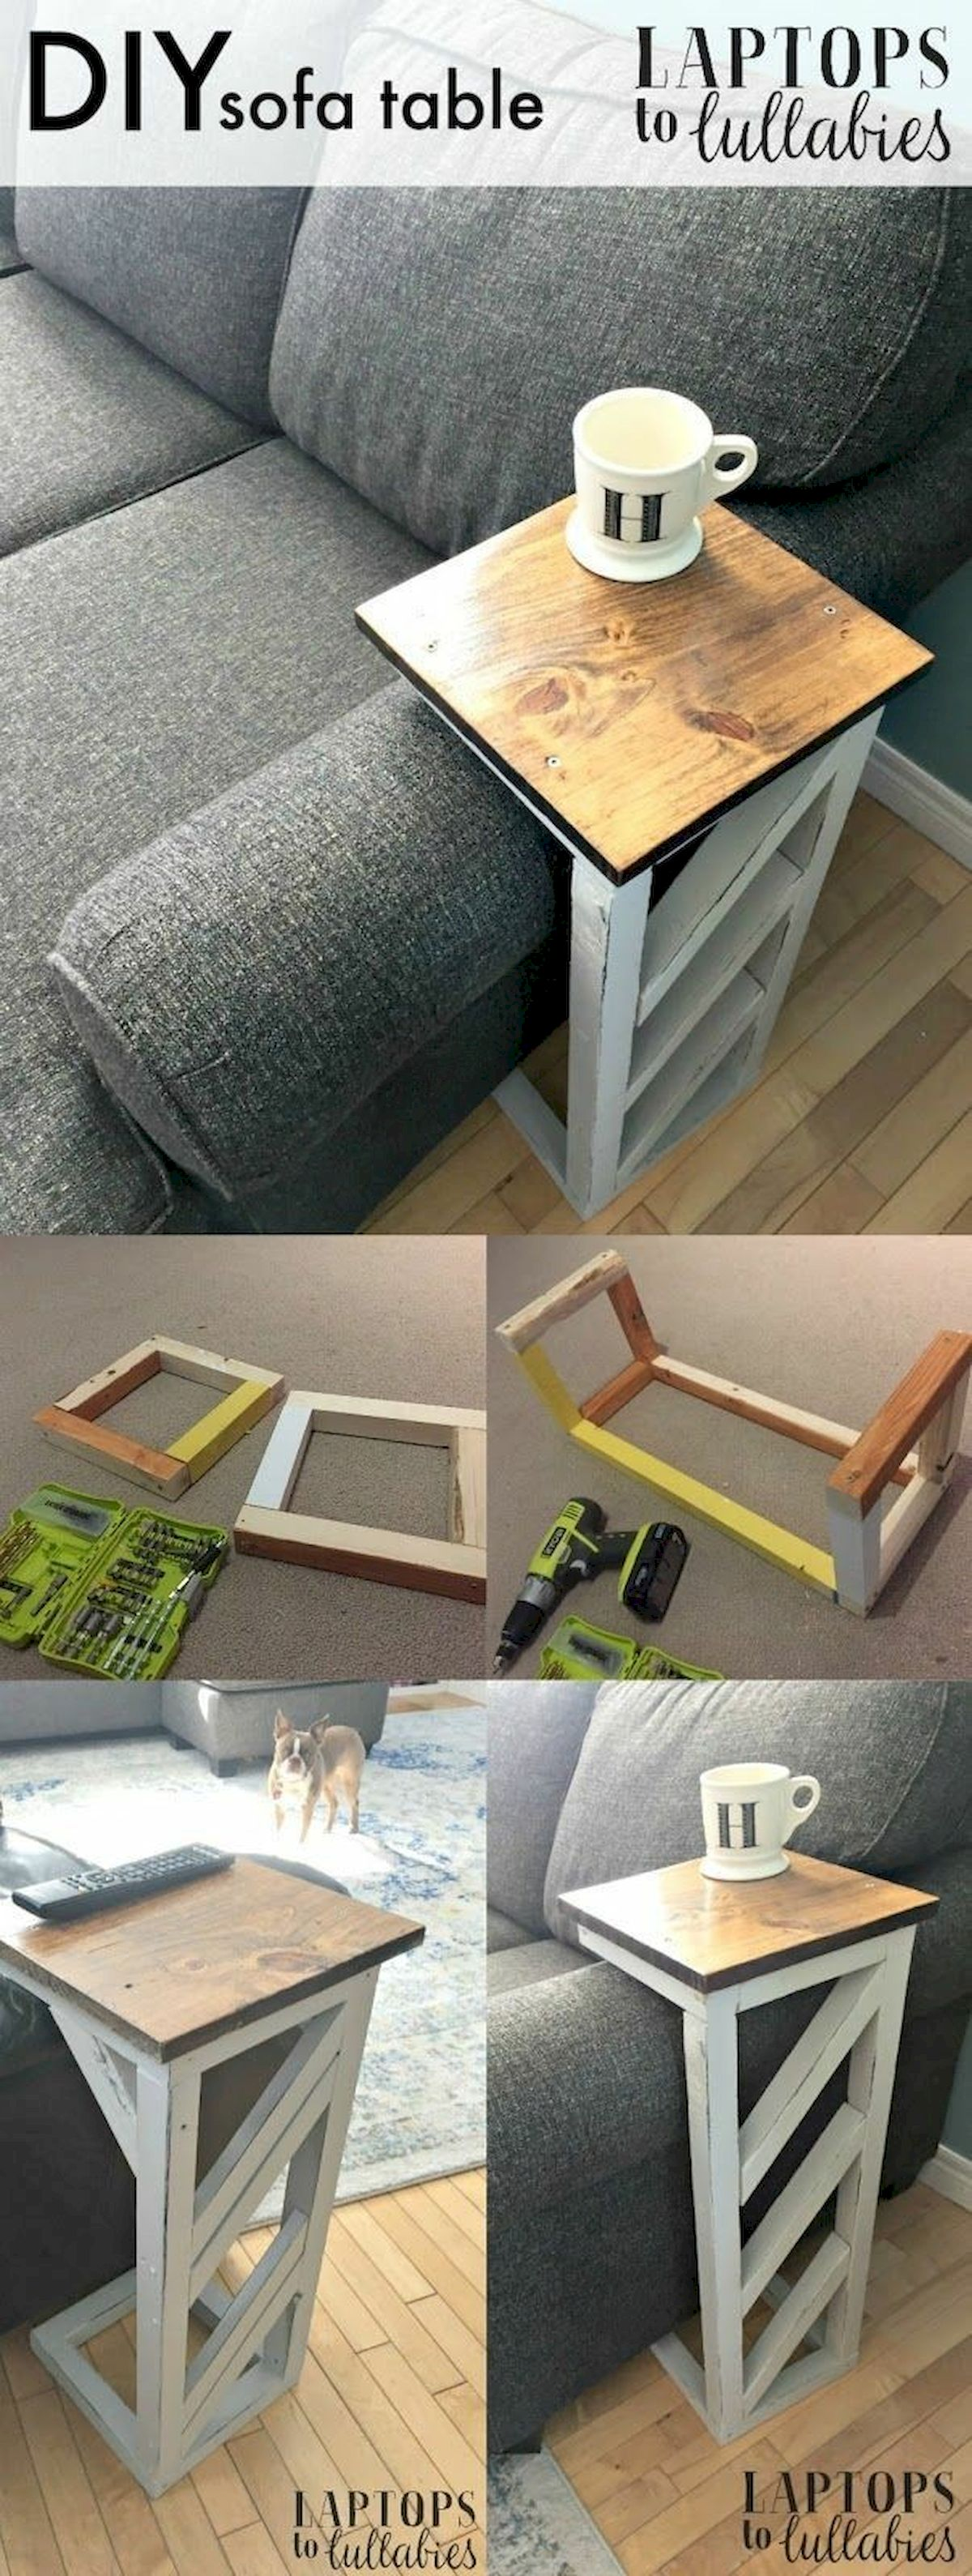 60 Easy DIY Wood Furniture Projects Ideas (34)